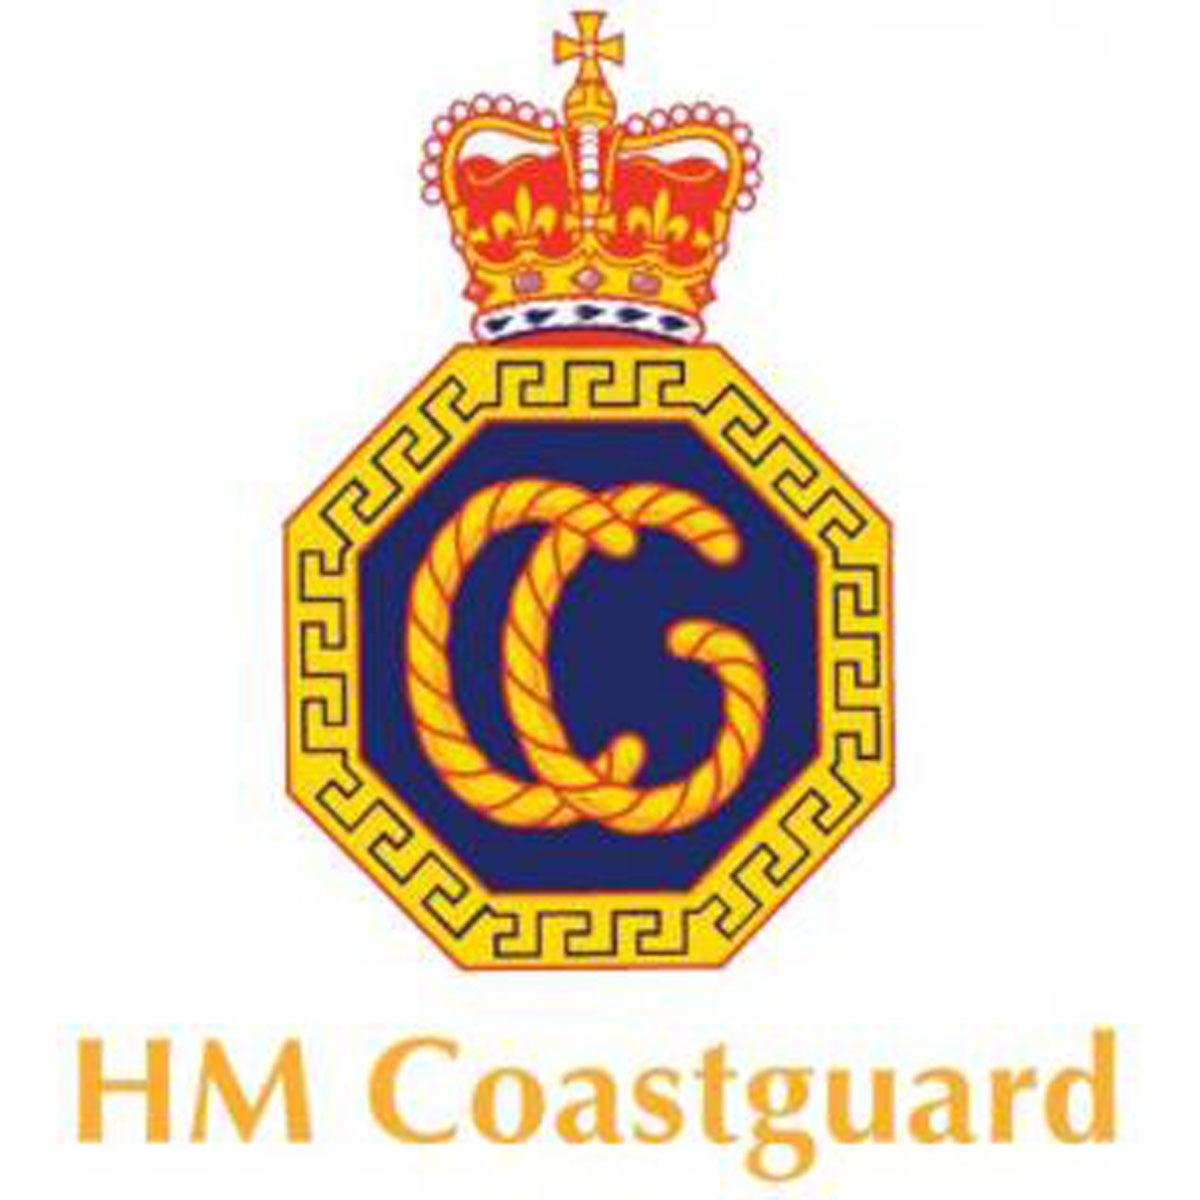 COASTGUARD ROUNDUP: Warning to Weymouth harbour jumpers